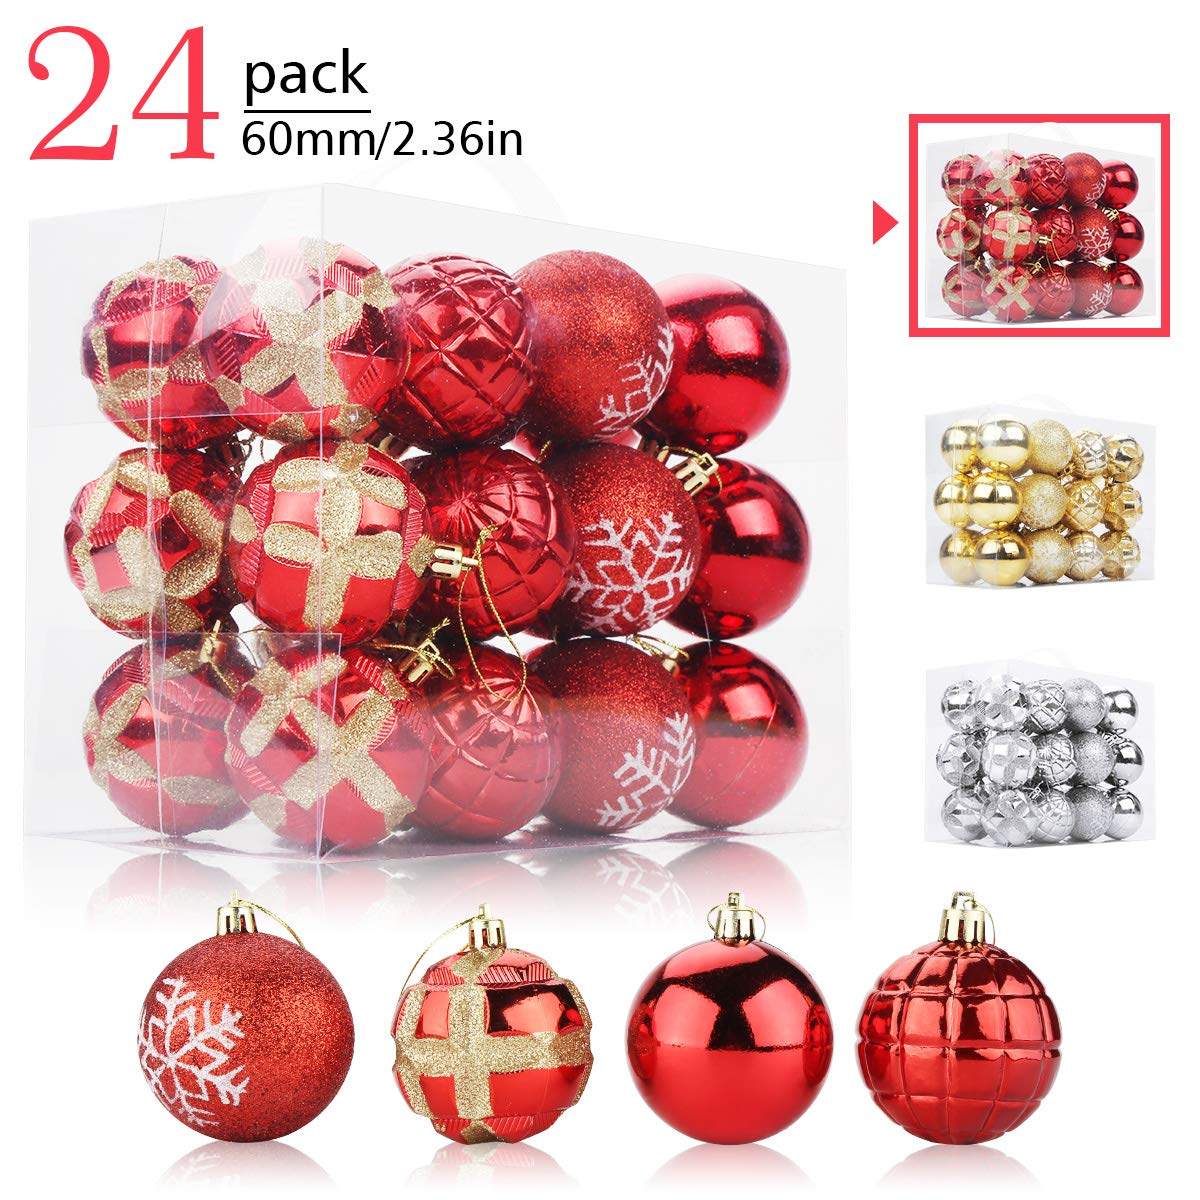 Aitsite 24 Pack Christmas Tree Ornaments Set 2 36 Inches Mini Shatterproof Holiday Ornaments Balls For Christmas Decorations Personalized Red